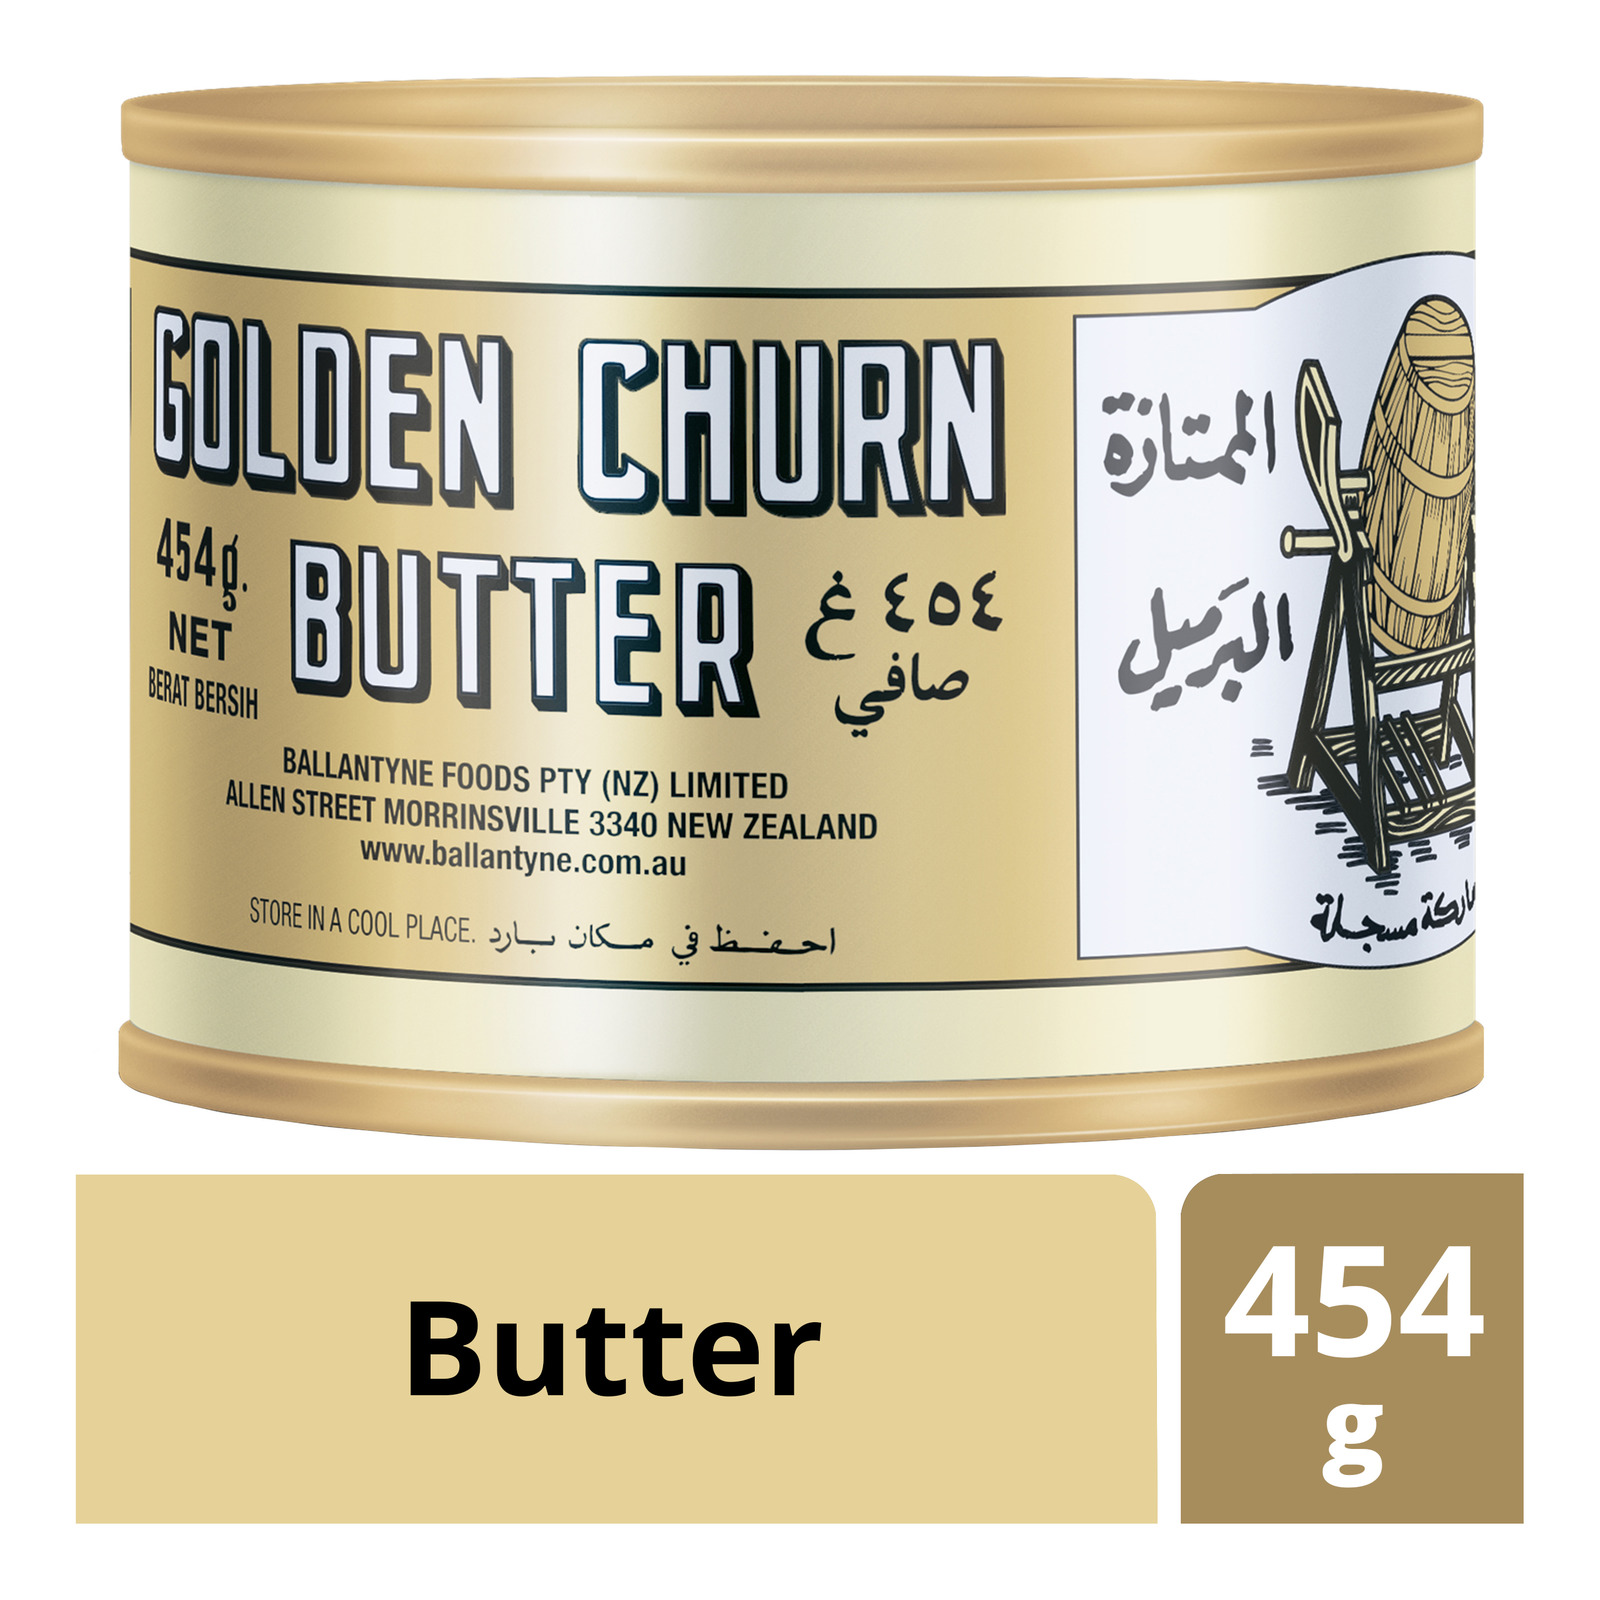 Golden Churn Butter